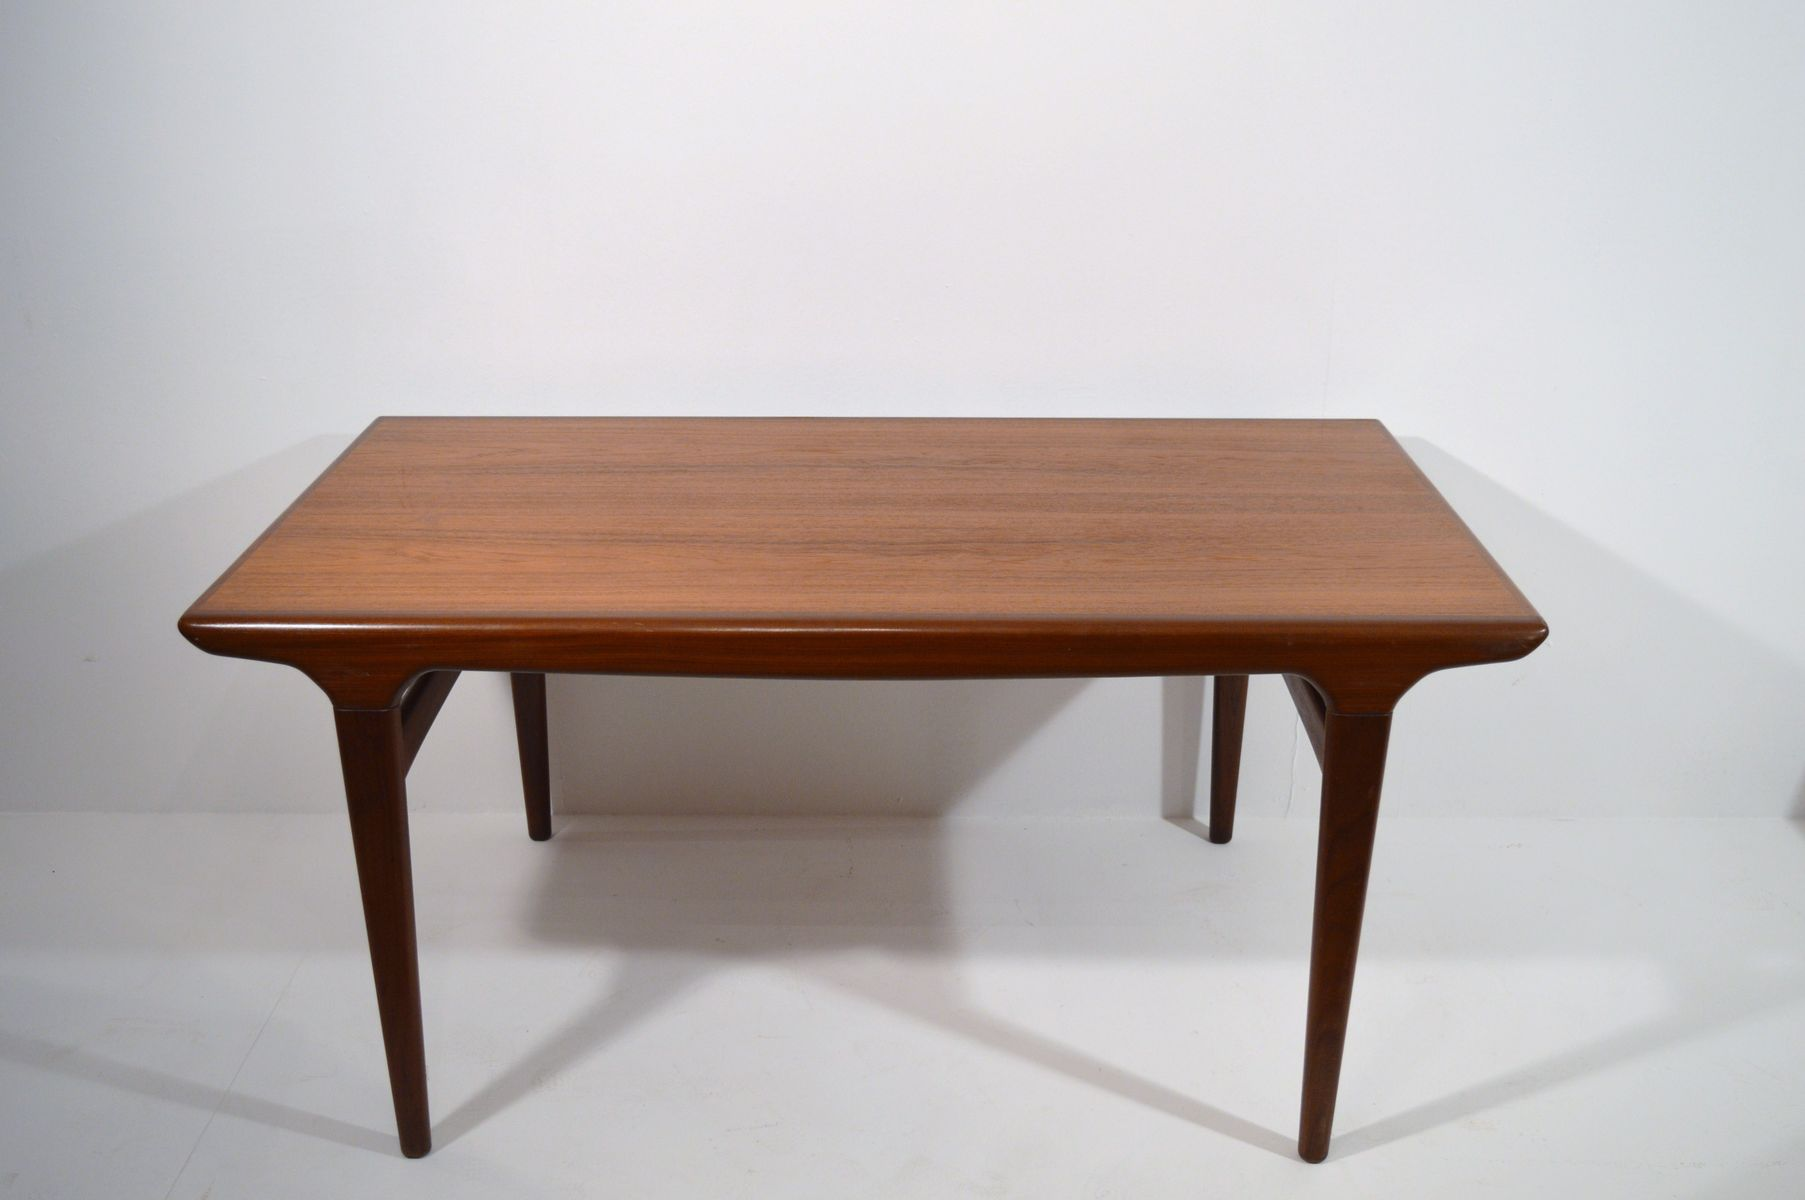 Mid Century Danish Teak Dining Table 1960s for sale at Pamono : mid century danish teak dining table 1960s 3 from www.pamono.co.uk size 1805 x 1200 jpeg 74kB